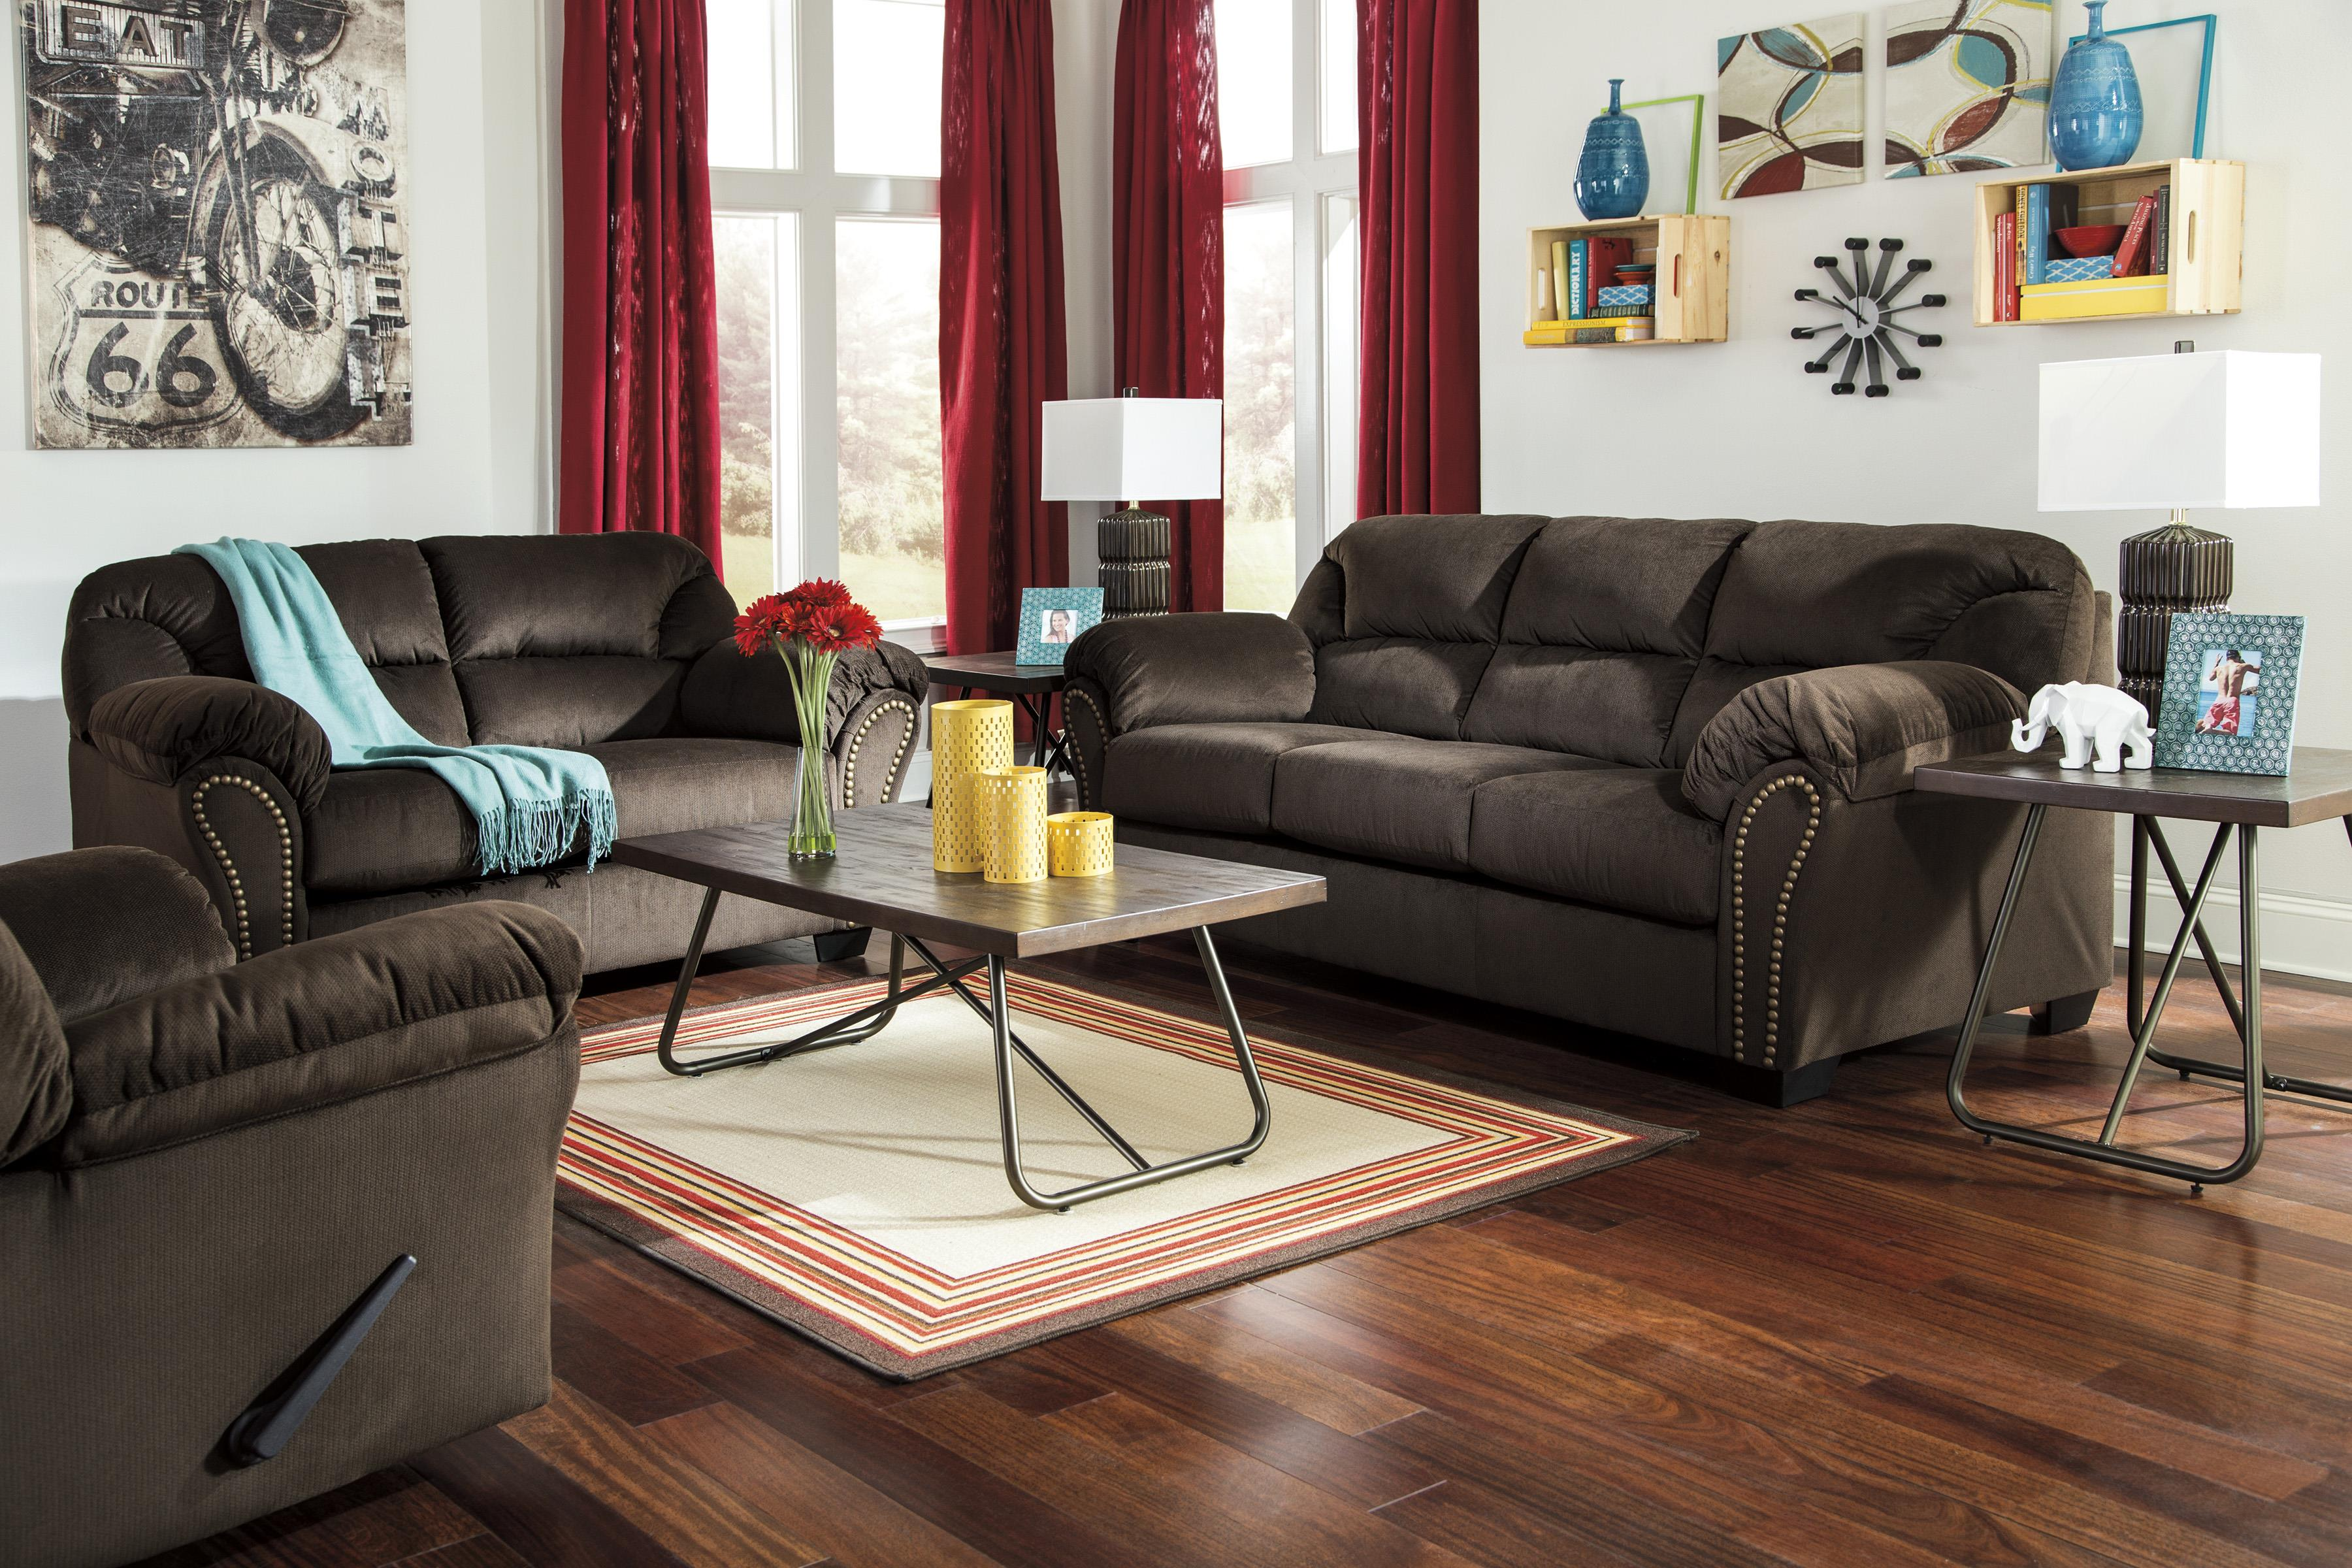 Signature Design by Ashley Kinlock Stationary Living Room Group - Item Number: 33401 Living Room Group 3